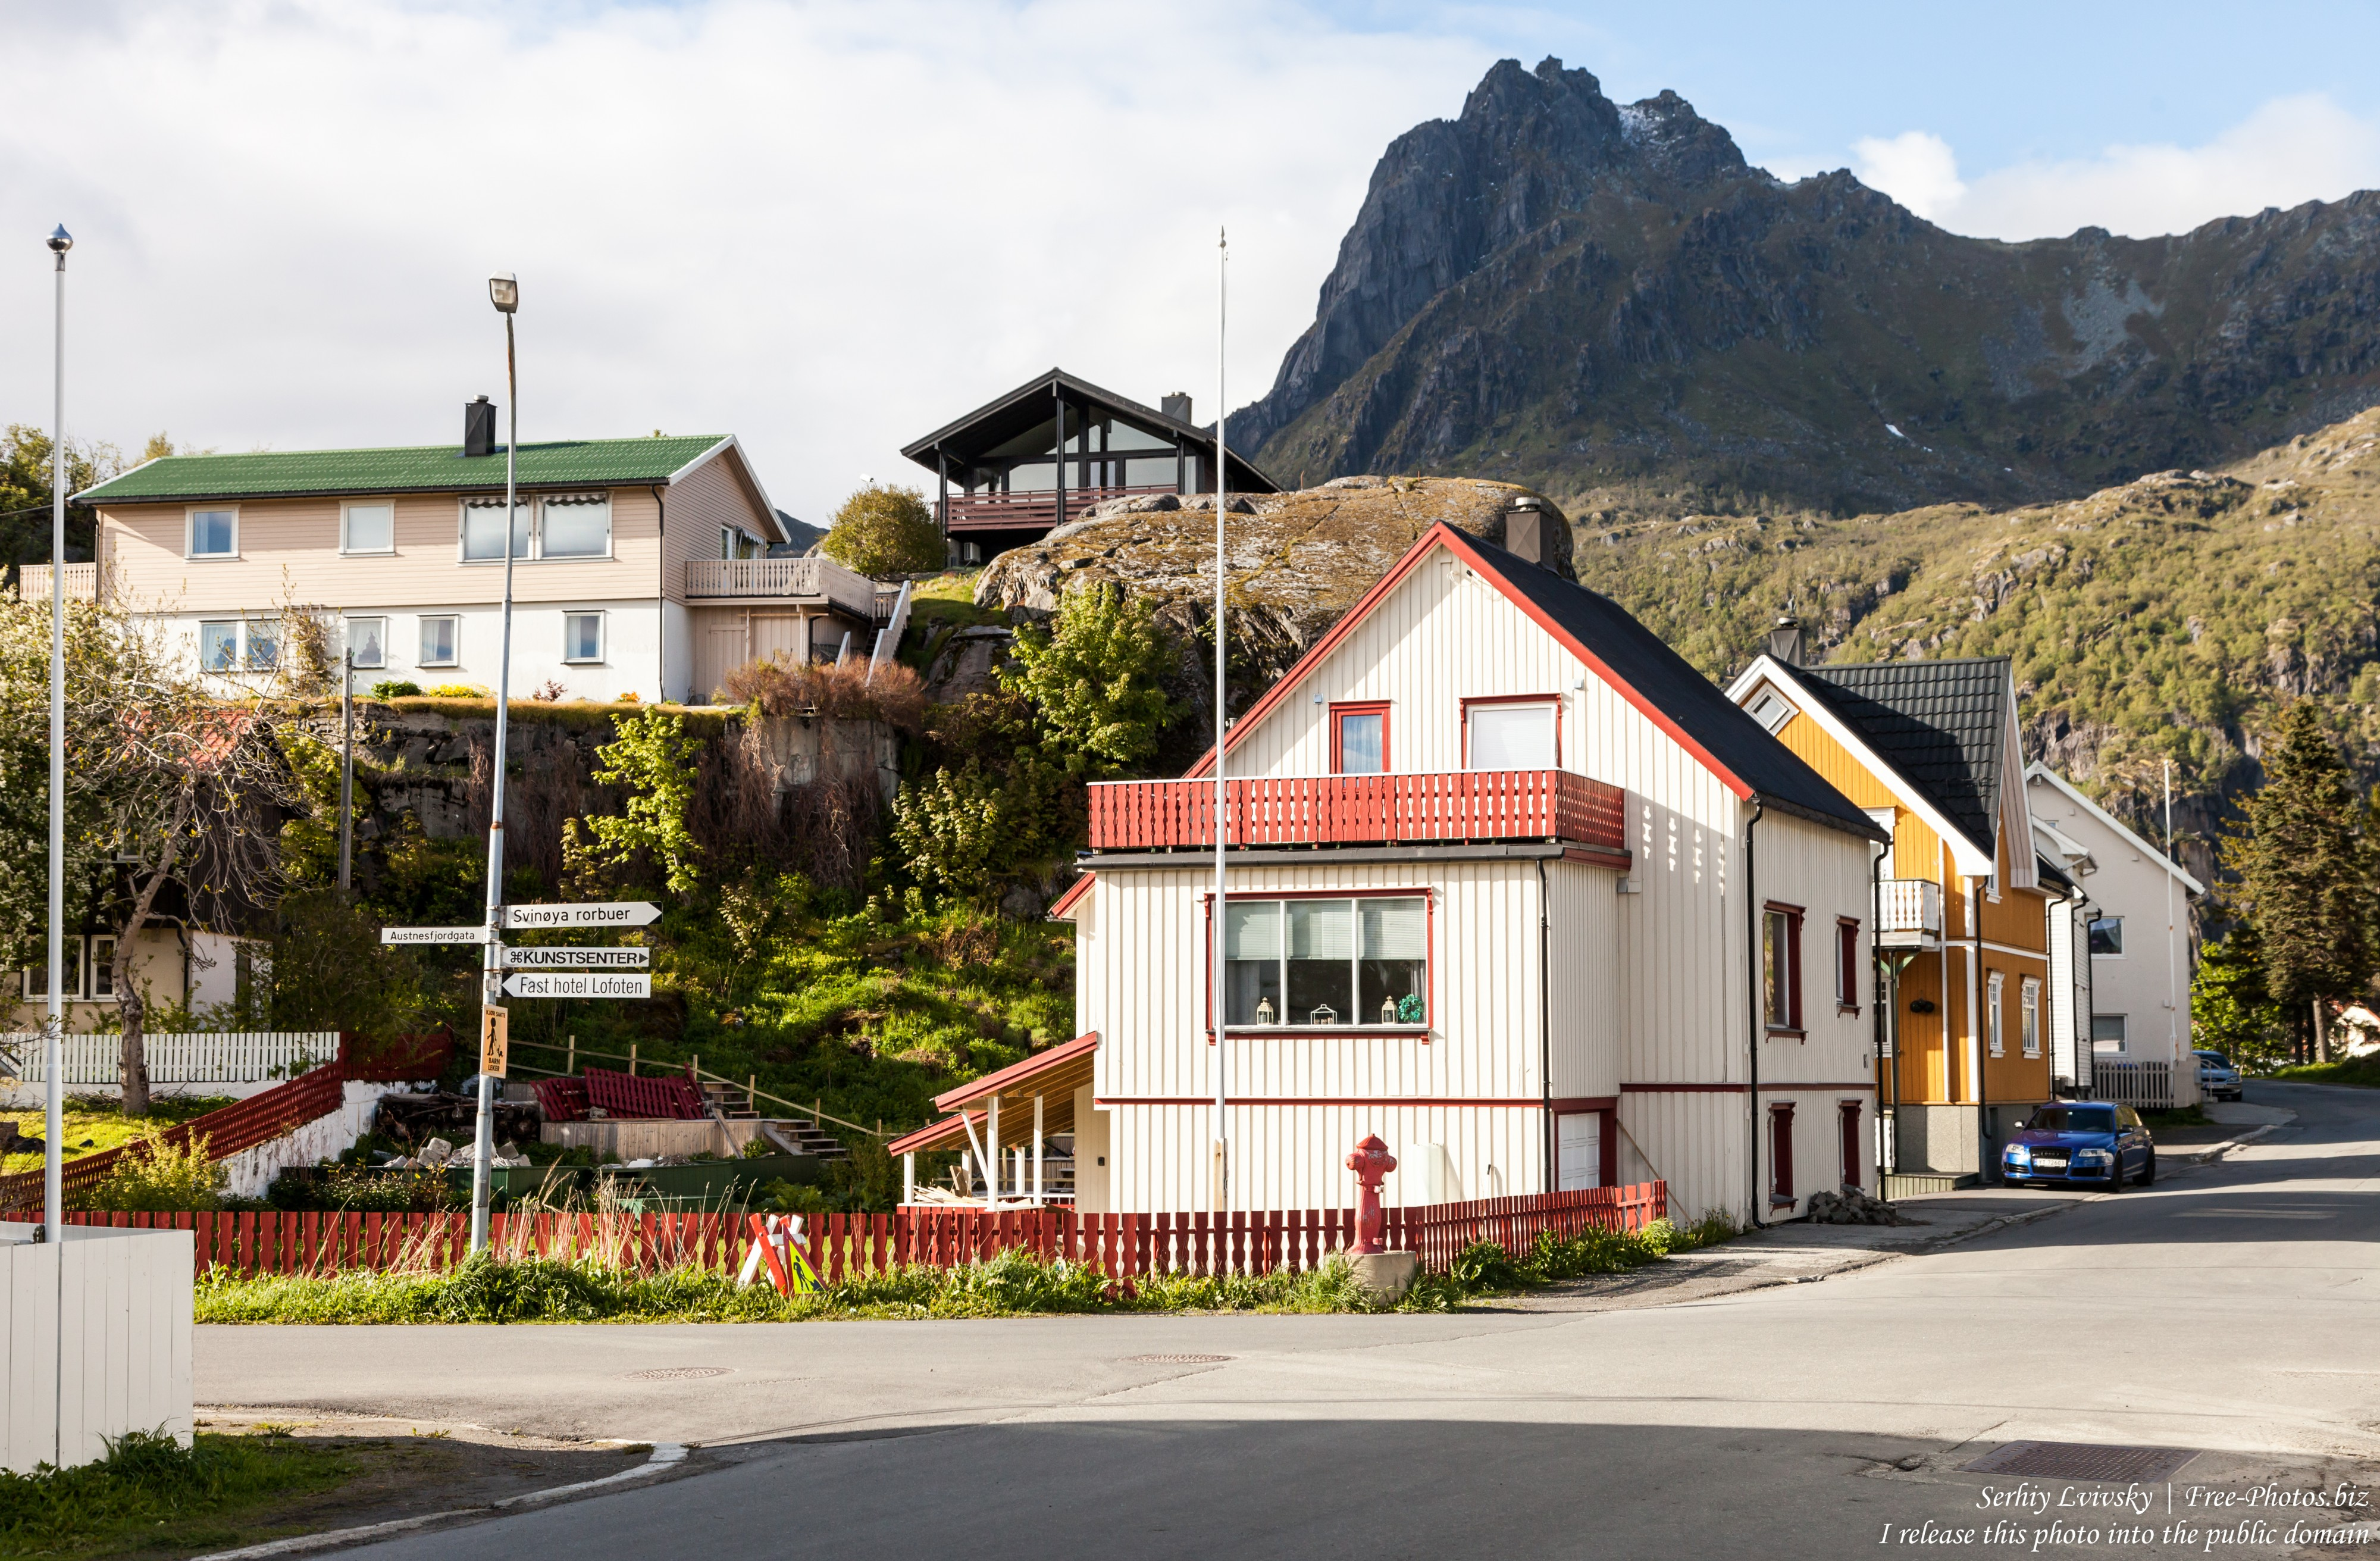 Svolvaer, Lofoten, Norway photographed in June 2018 by Serhiy Lvivsky, picture 27